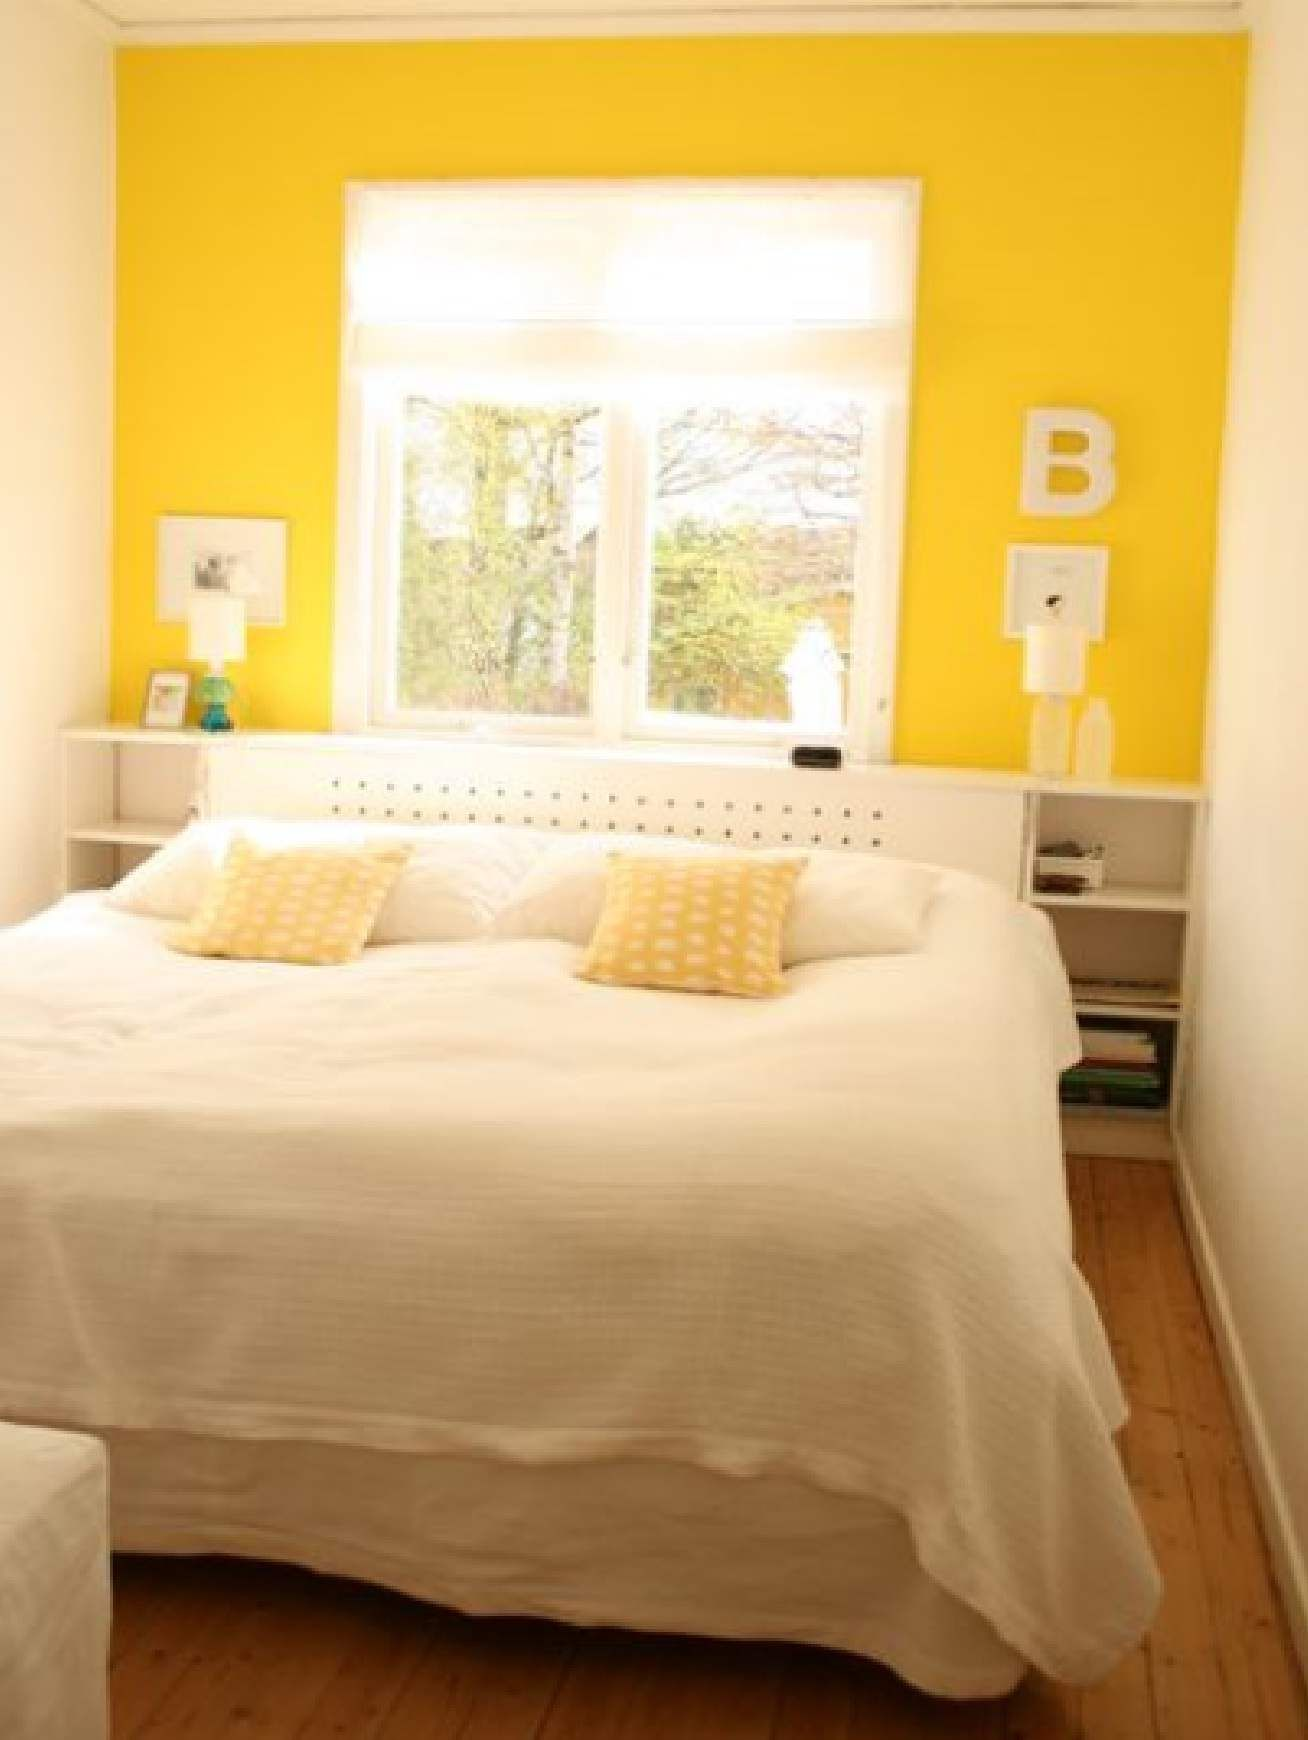 Simple Interior Design Ideas For Small Bedroom | Pinterest | Yellow ...